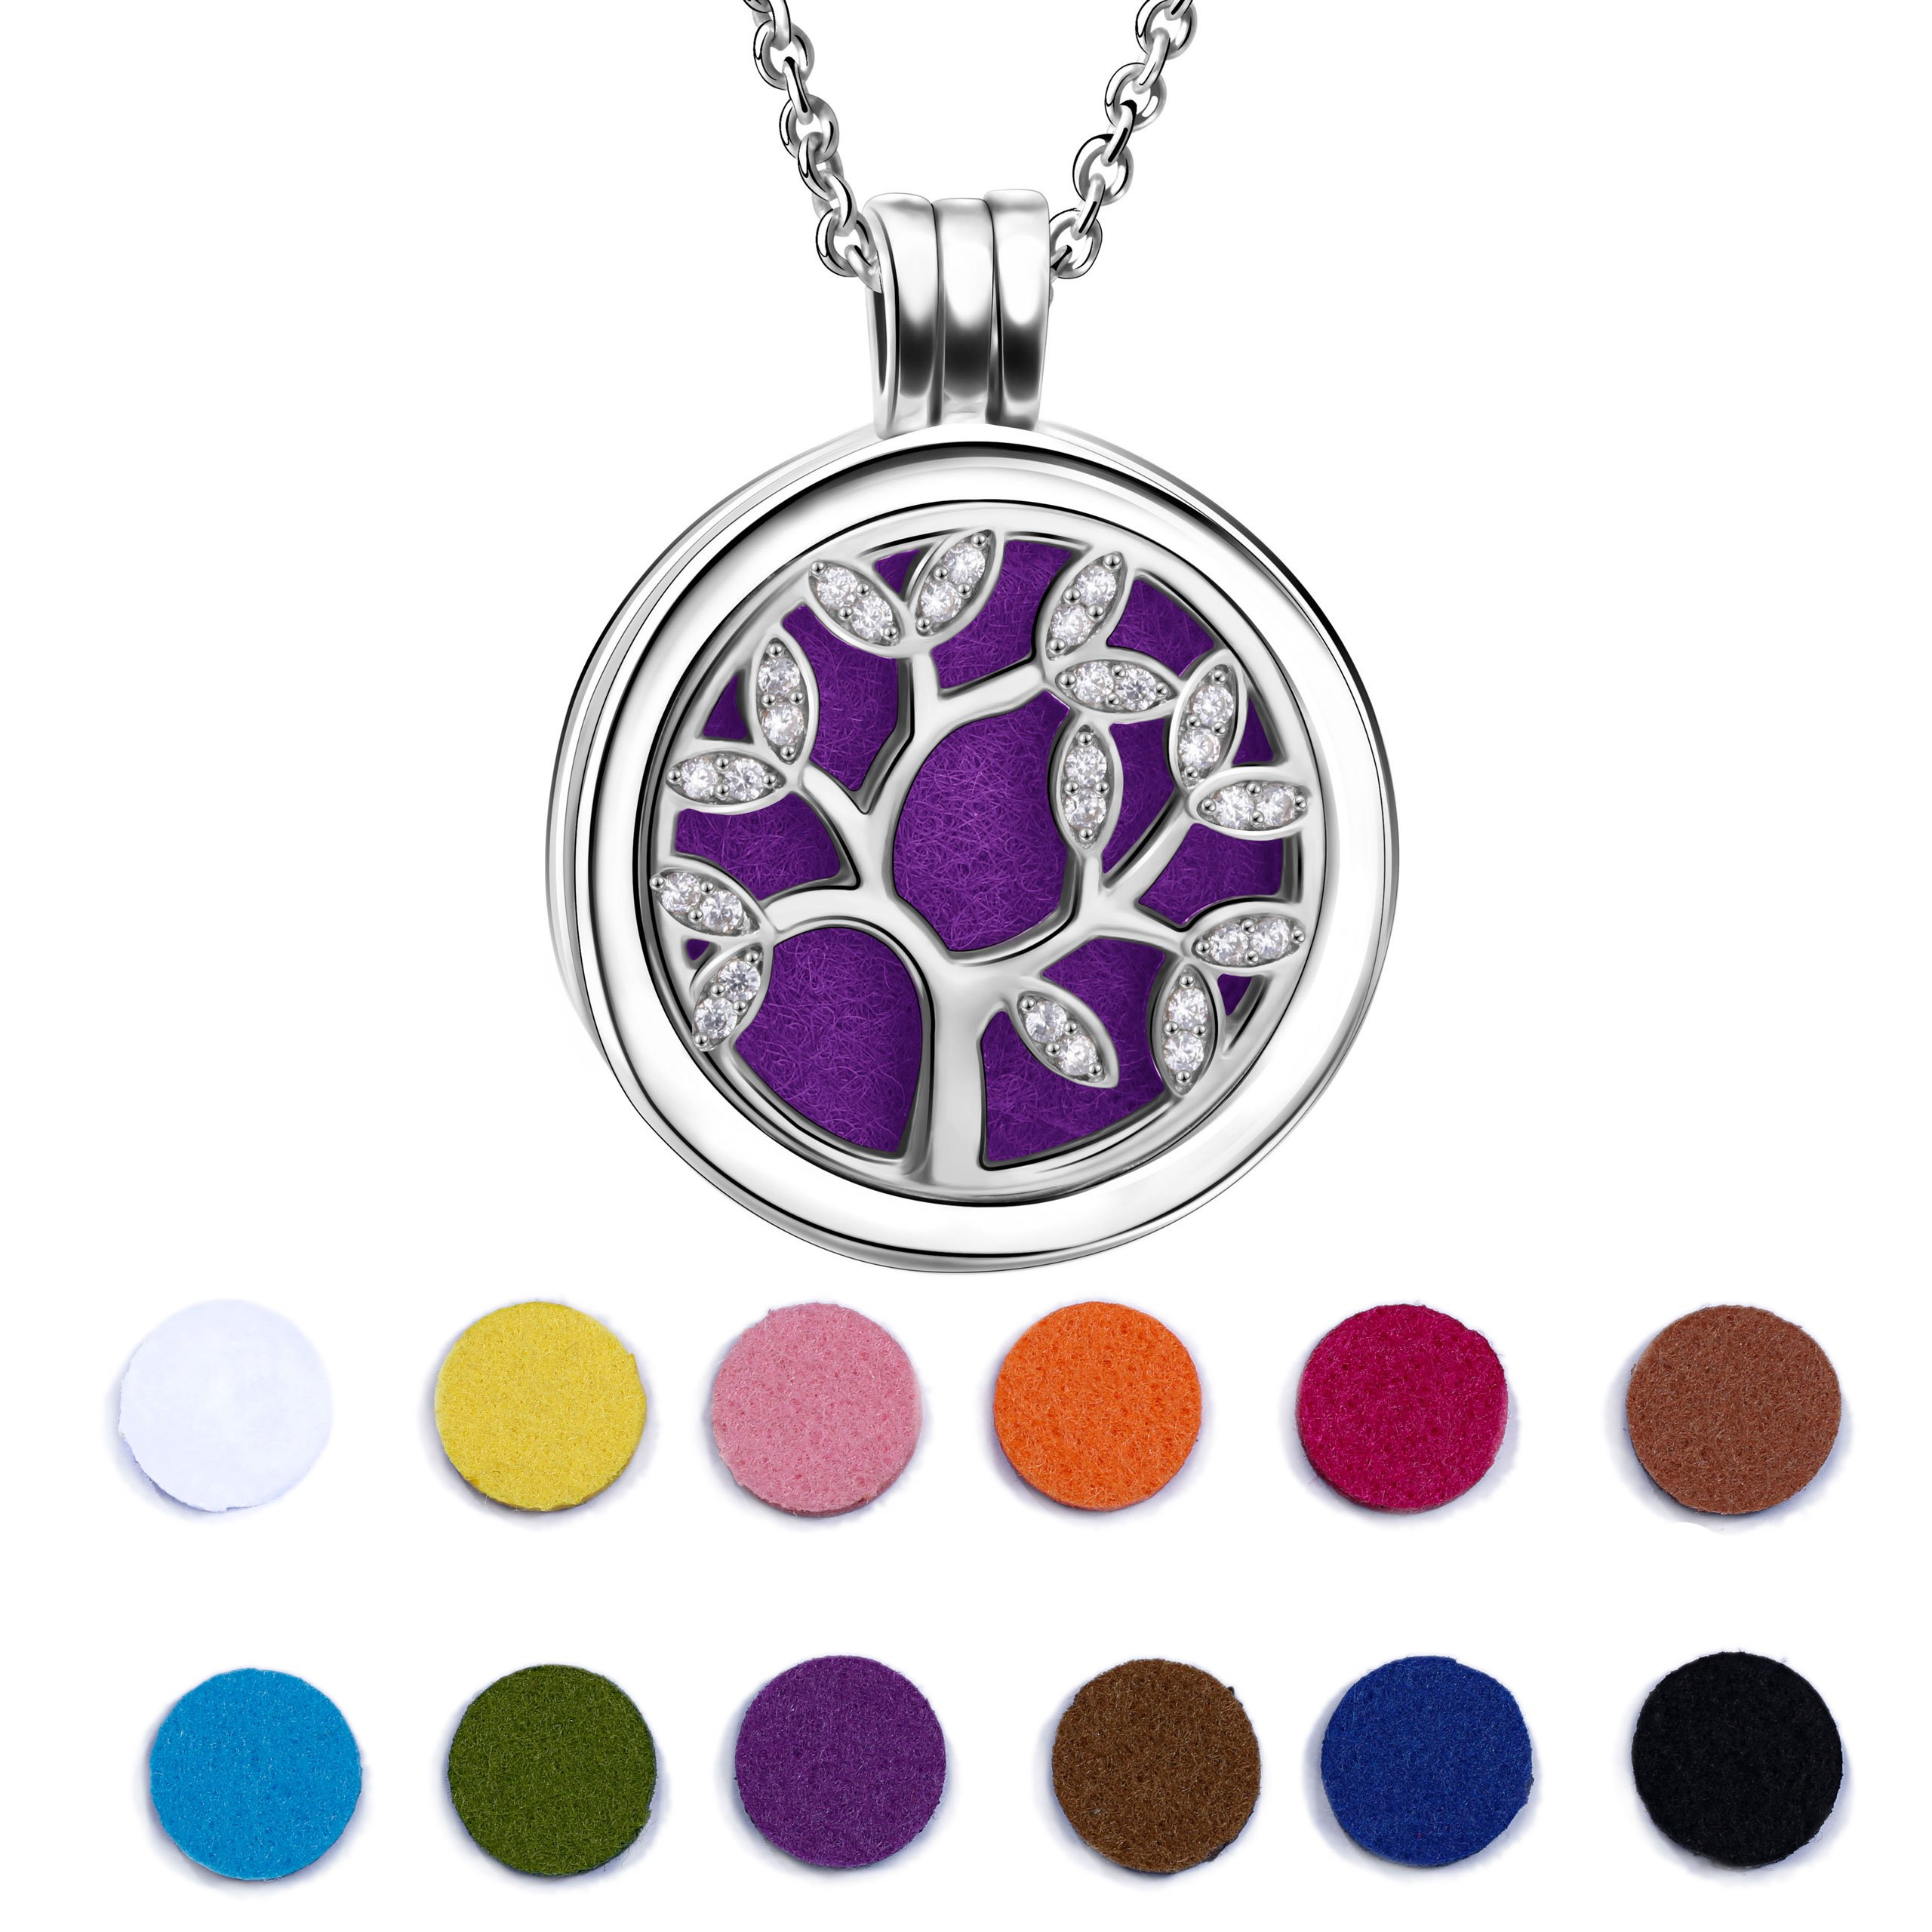 Angemiel 925 Sterling Silver Cubic Zirconia Life Tree Essential Oil Diffuser Locket Necklace